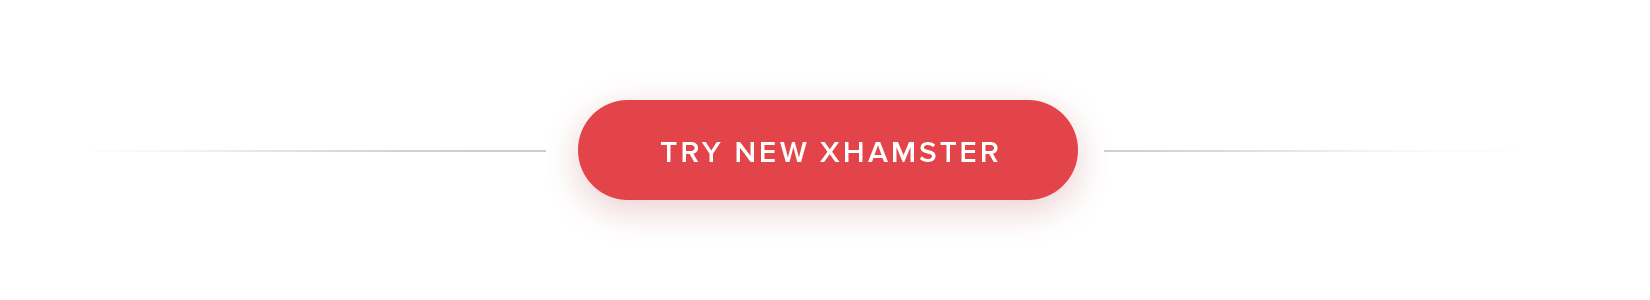 Welcome to a Public Testing of a New xHamster! 2